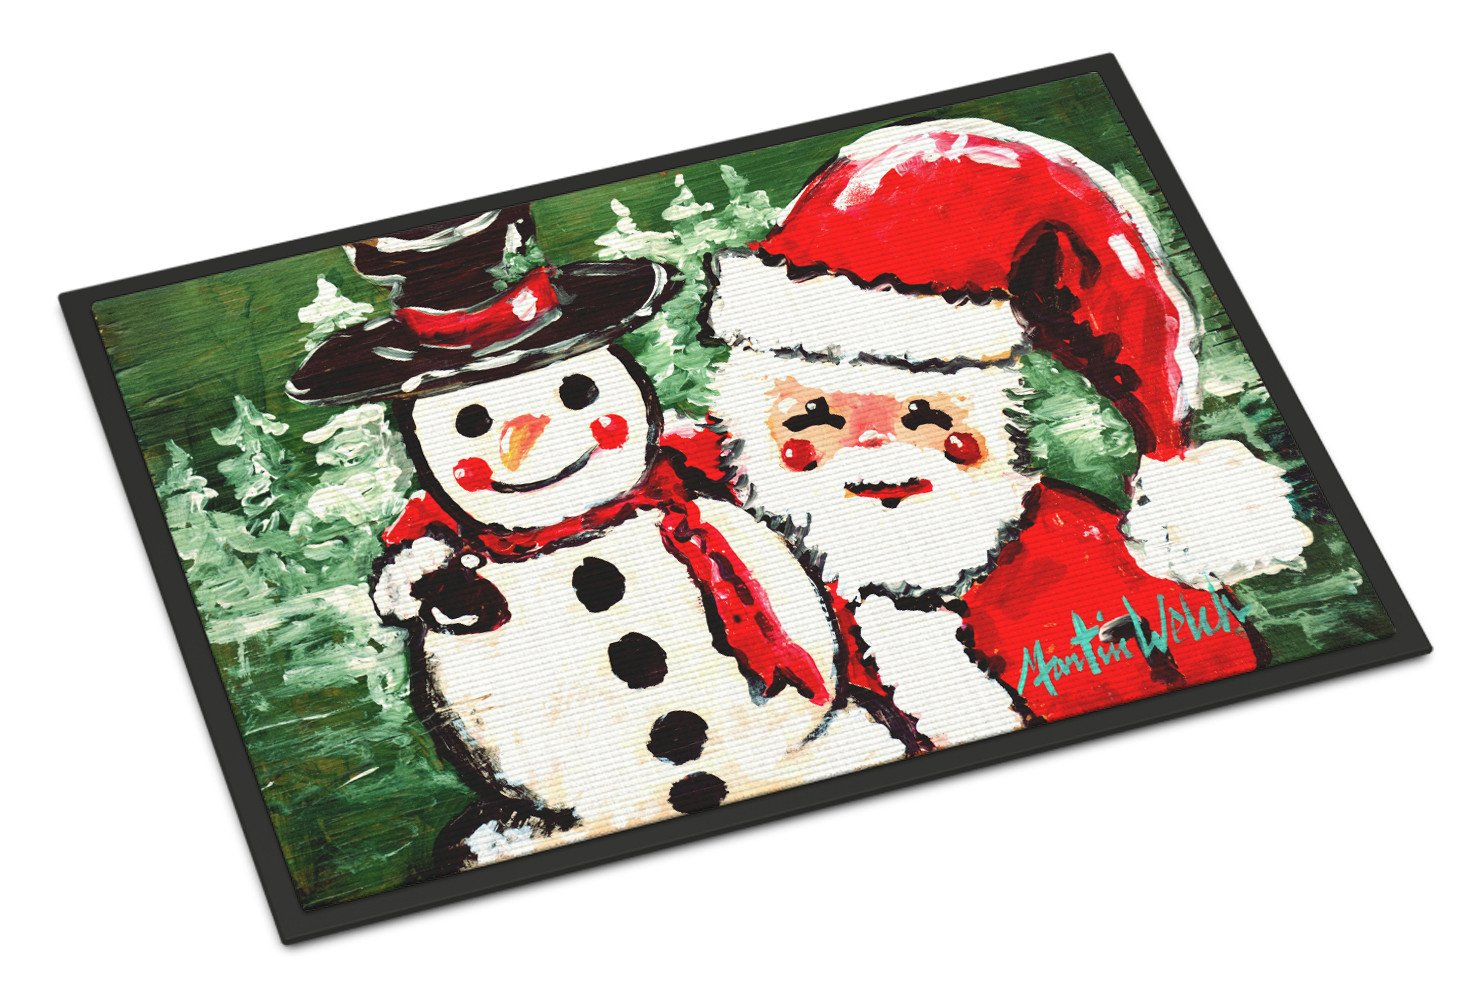 Friends Snowman and Santa Claus Indoor or Outdoor Mat 18x27 MW1167MAT by Caroline's Treasures